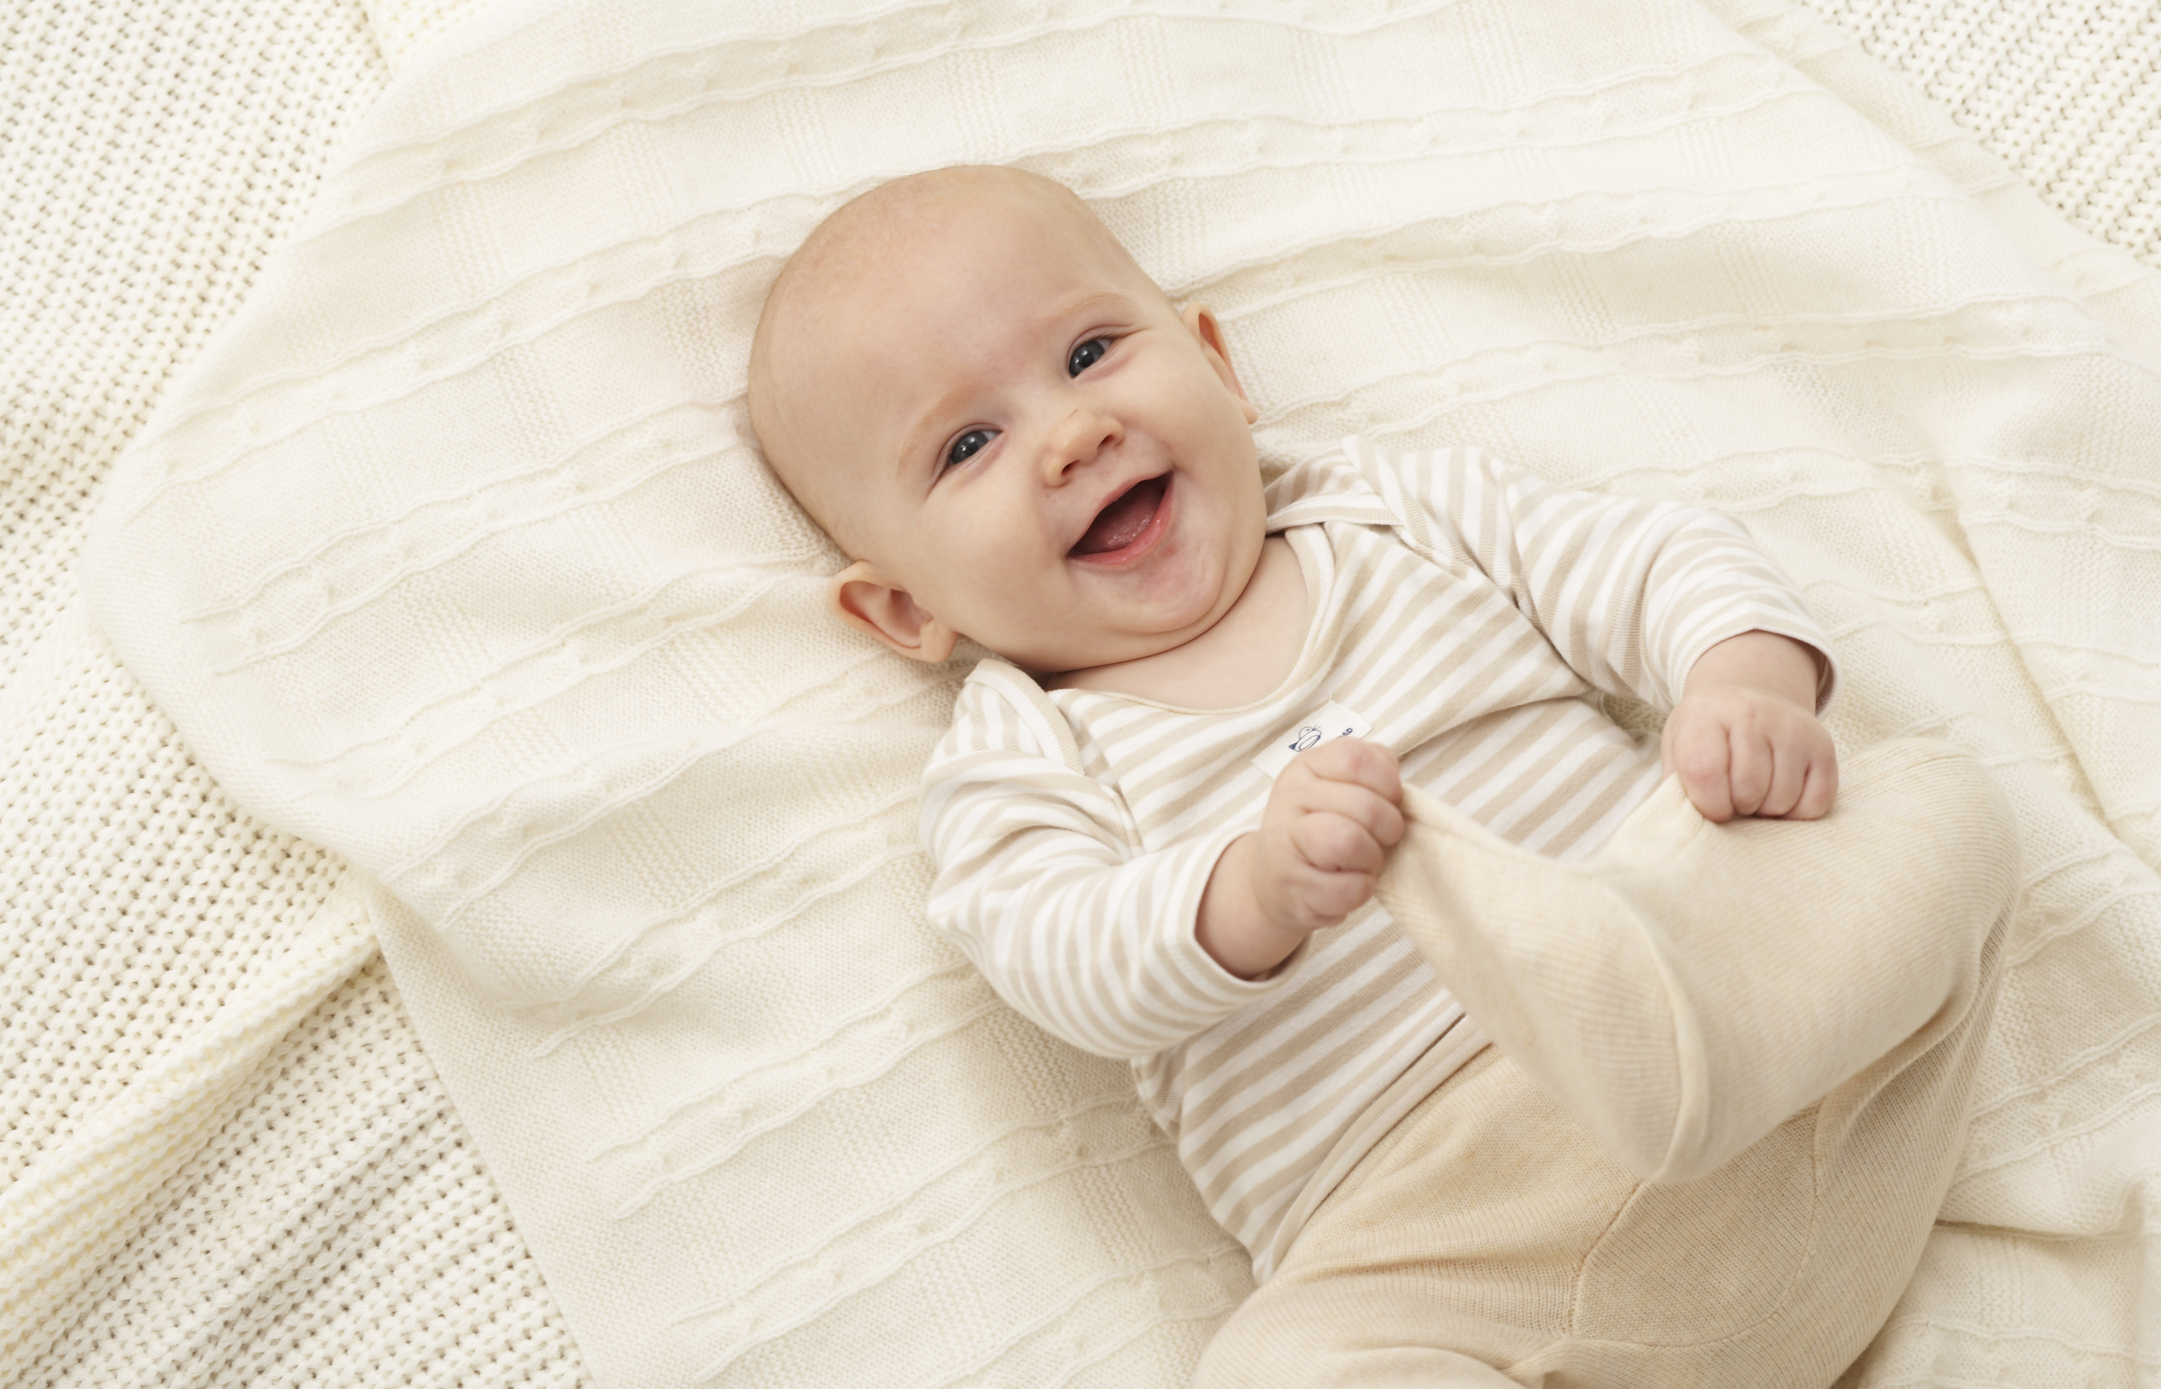 Should a creche be provided by the county council to help its workforce?